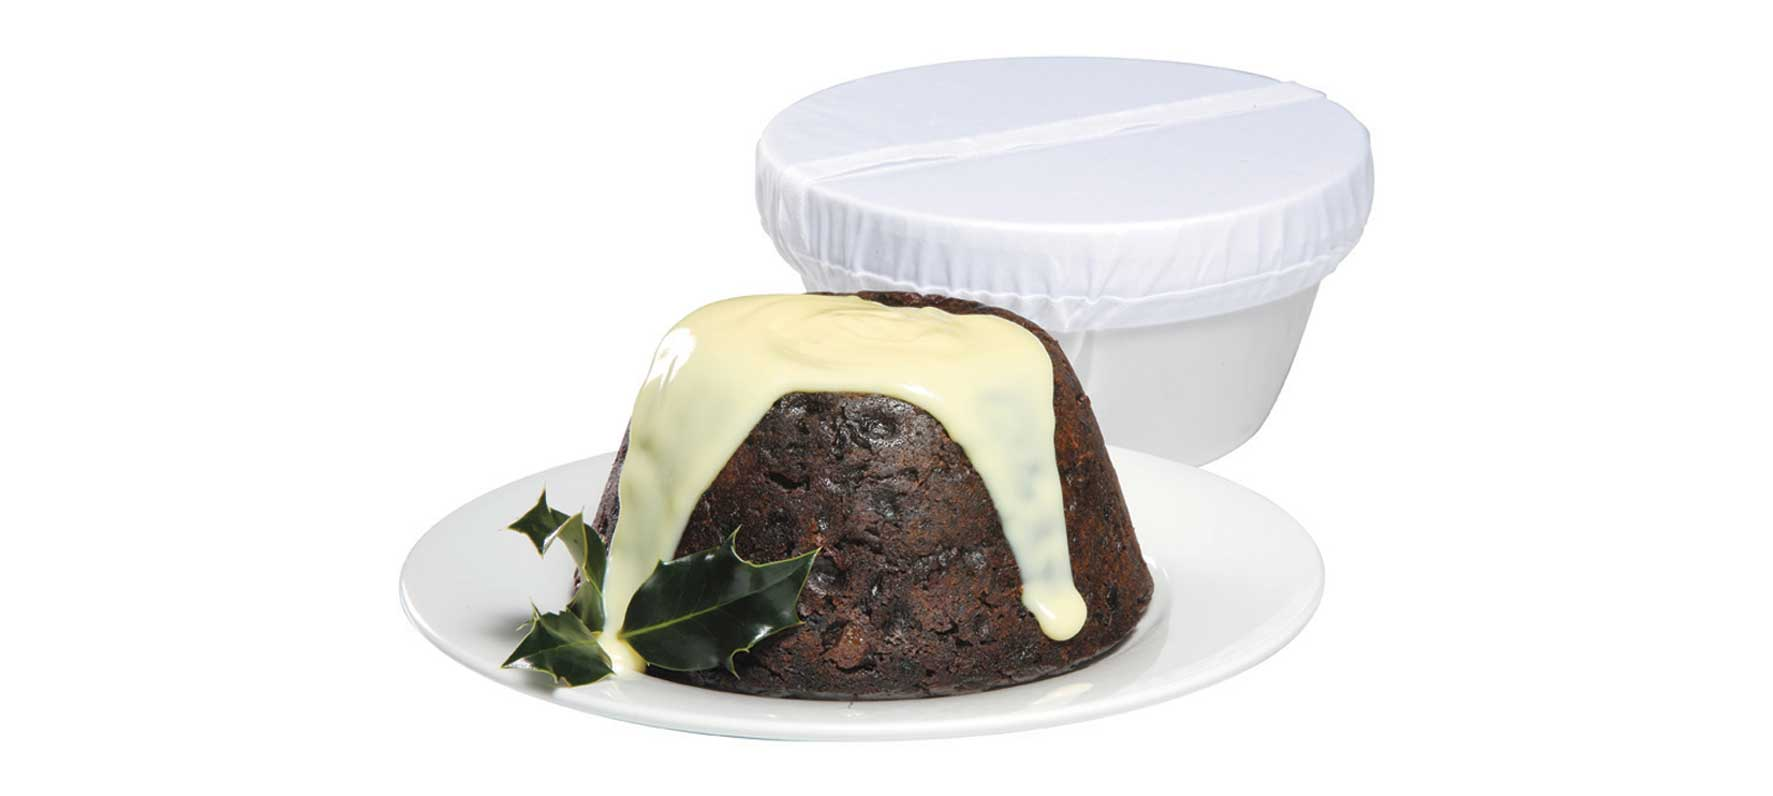 Cake Images Co Nz : The Great New Zealand Christmas Cake Company